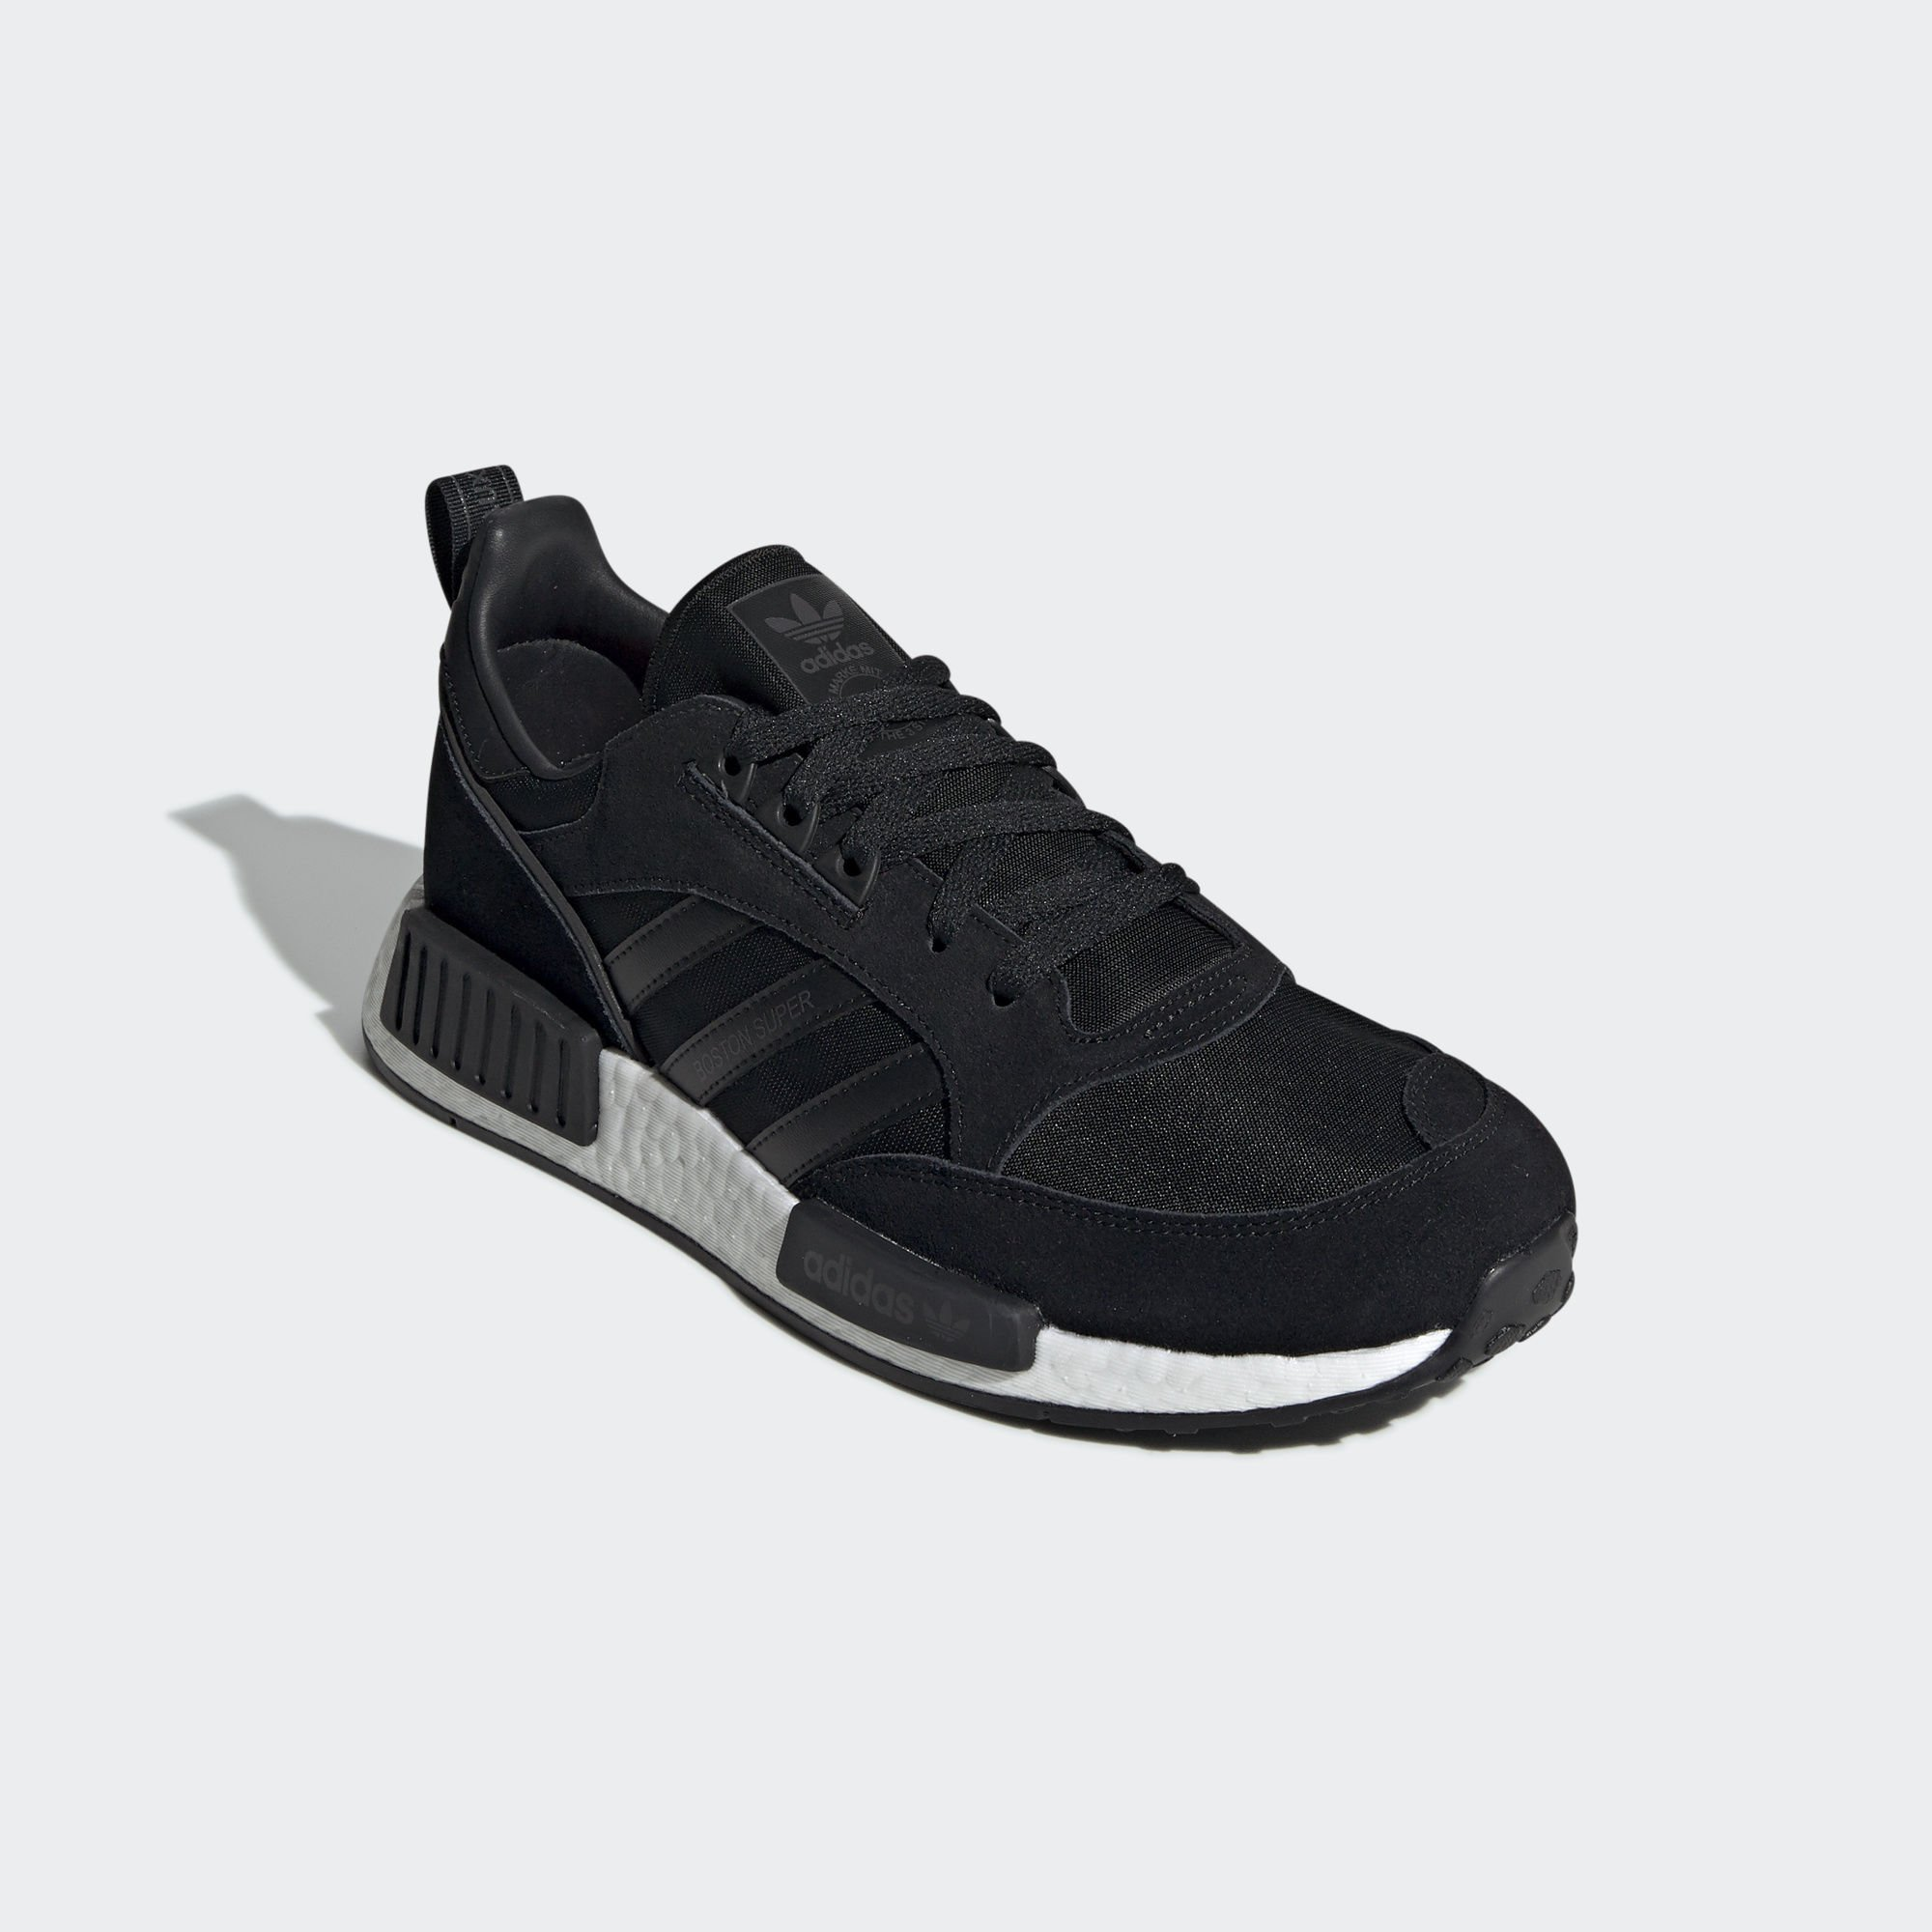 Adidas Boston Super x R1 Core Black / Utility Black / Solar Red (EE3654)